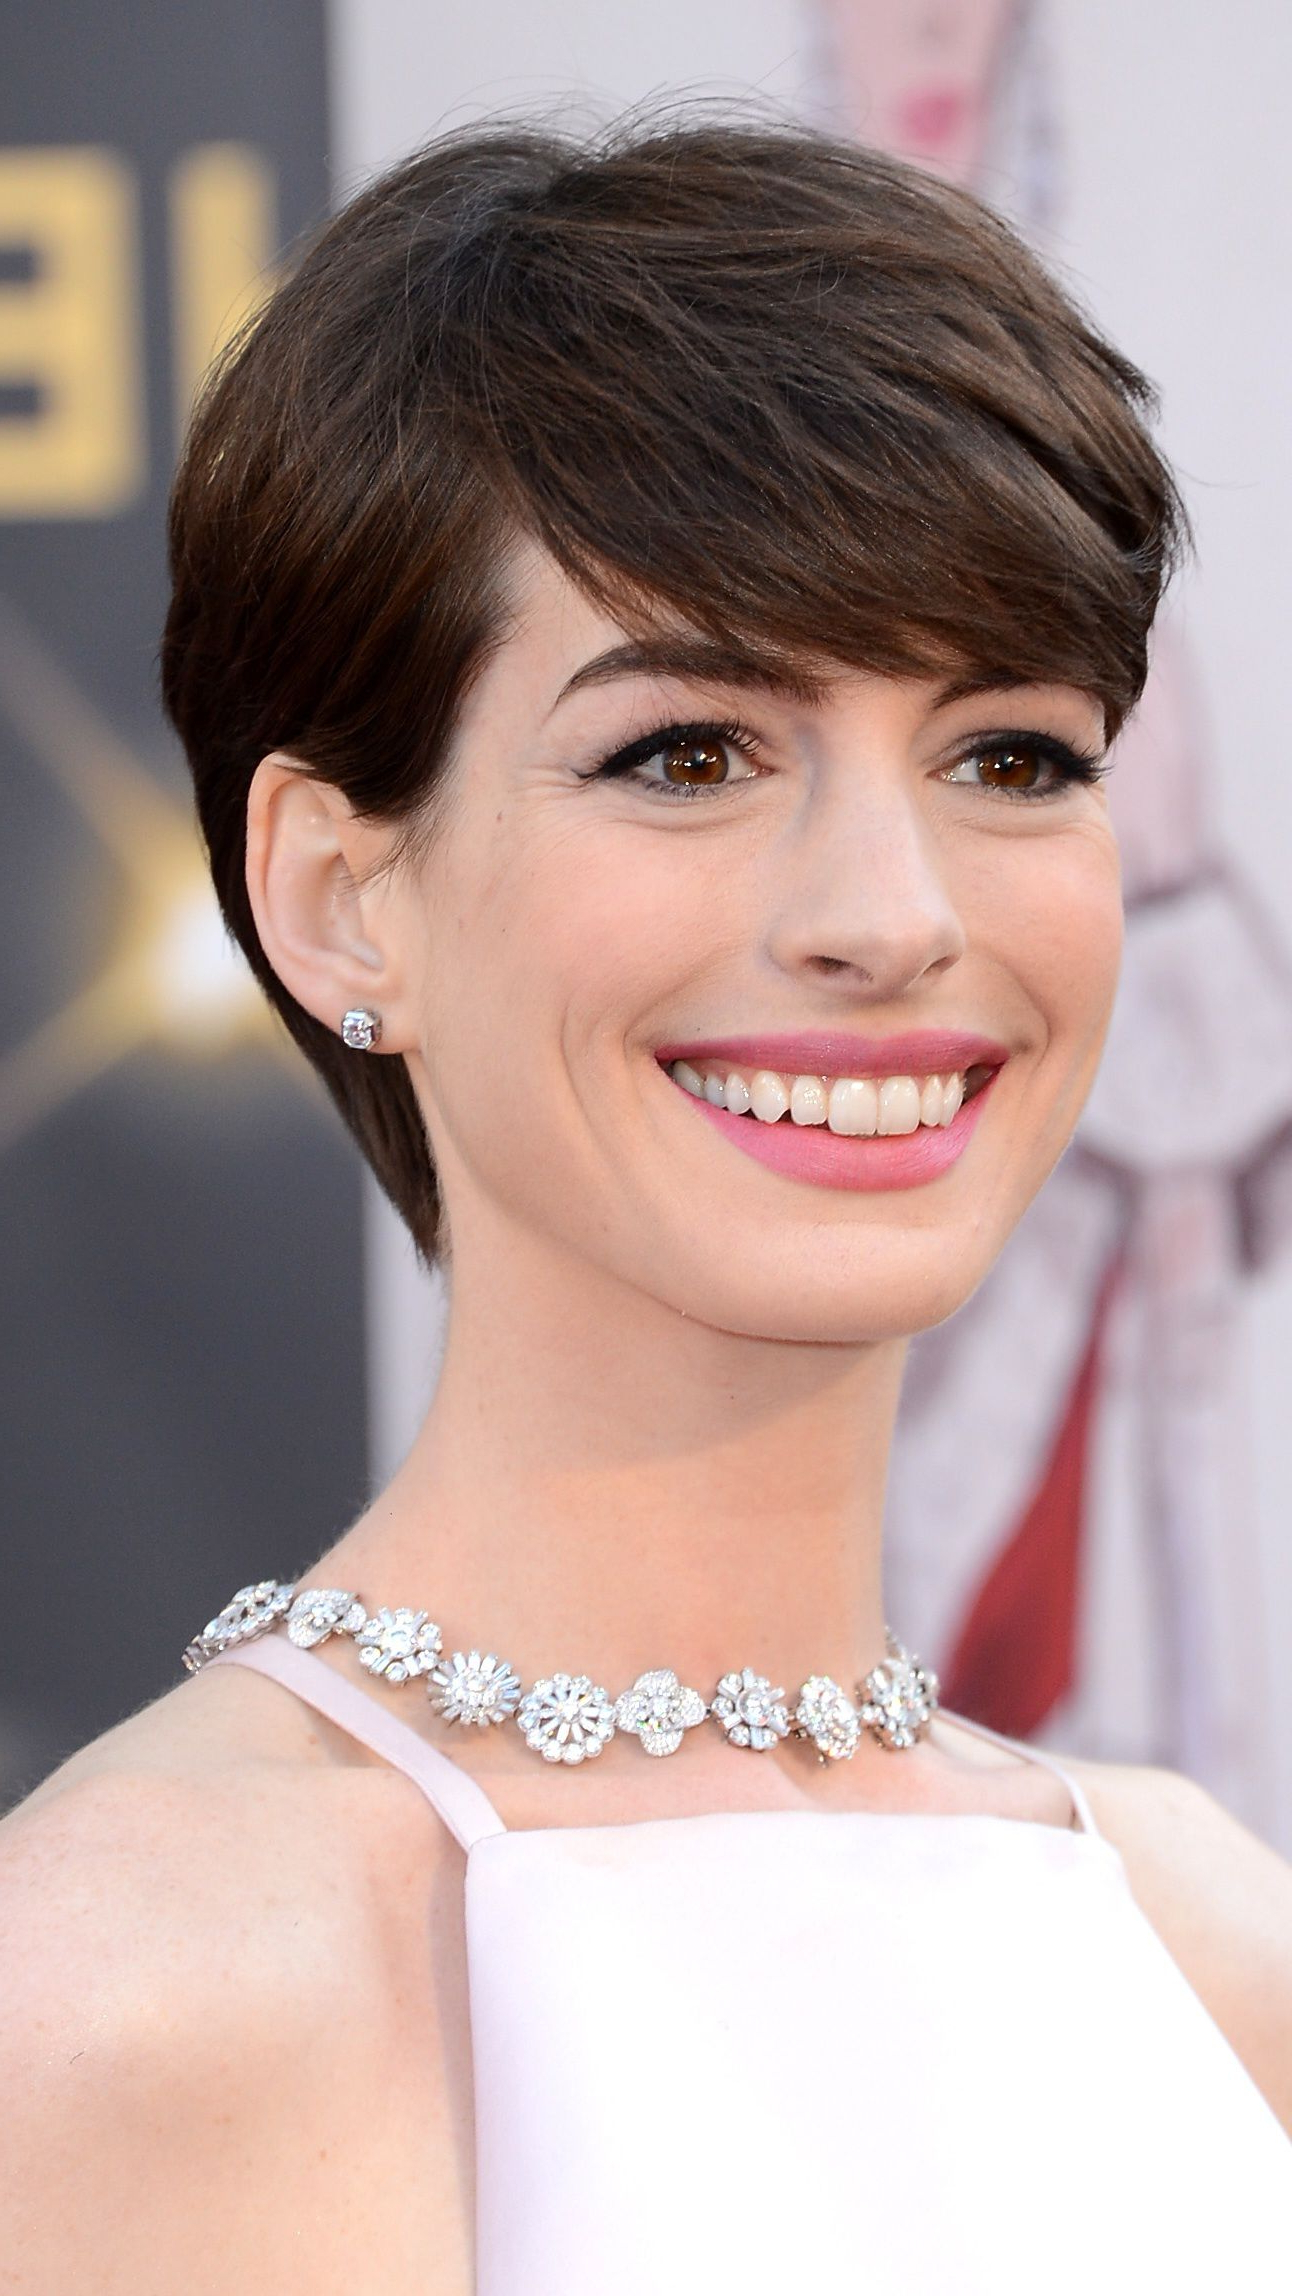 22 Inspiring Short Haircuts For Every Face Shape Pertaining To Funky Short Haircuts For Round Faces (View 17 of 25)